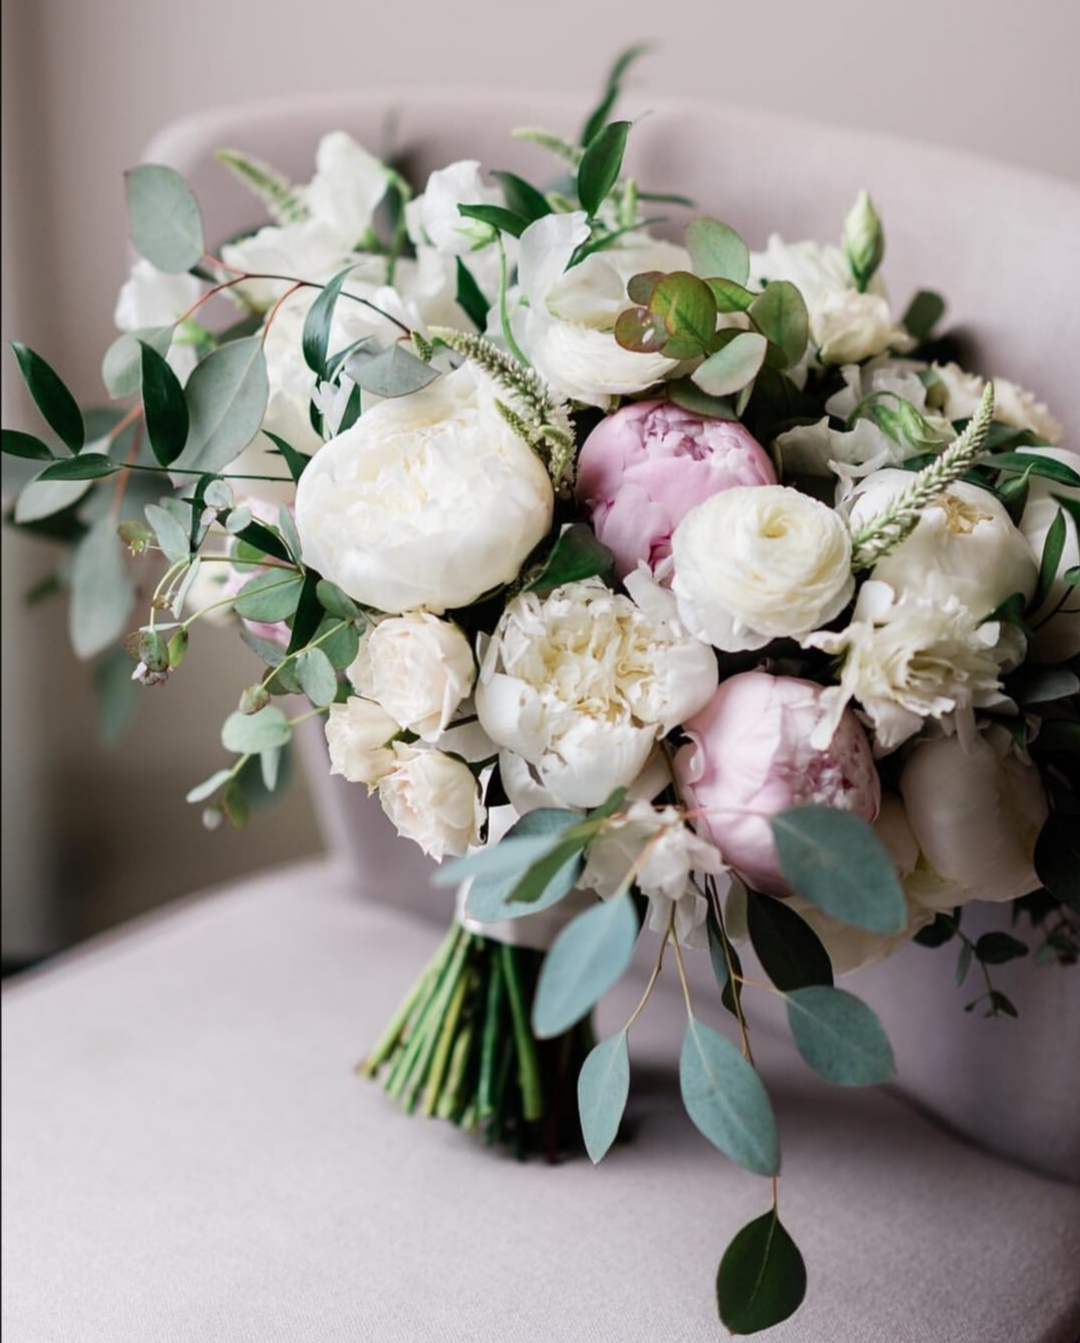 Pale pink bridal peony bouquets